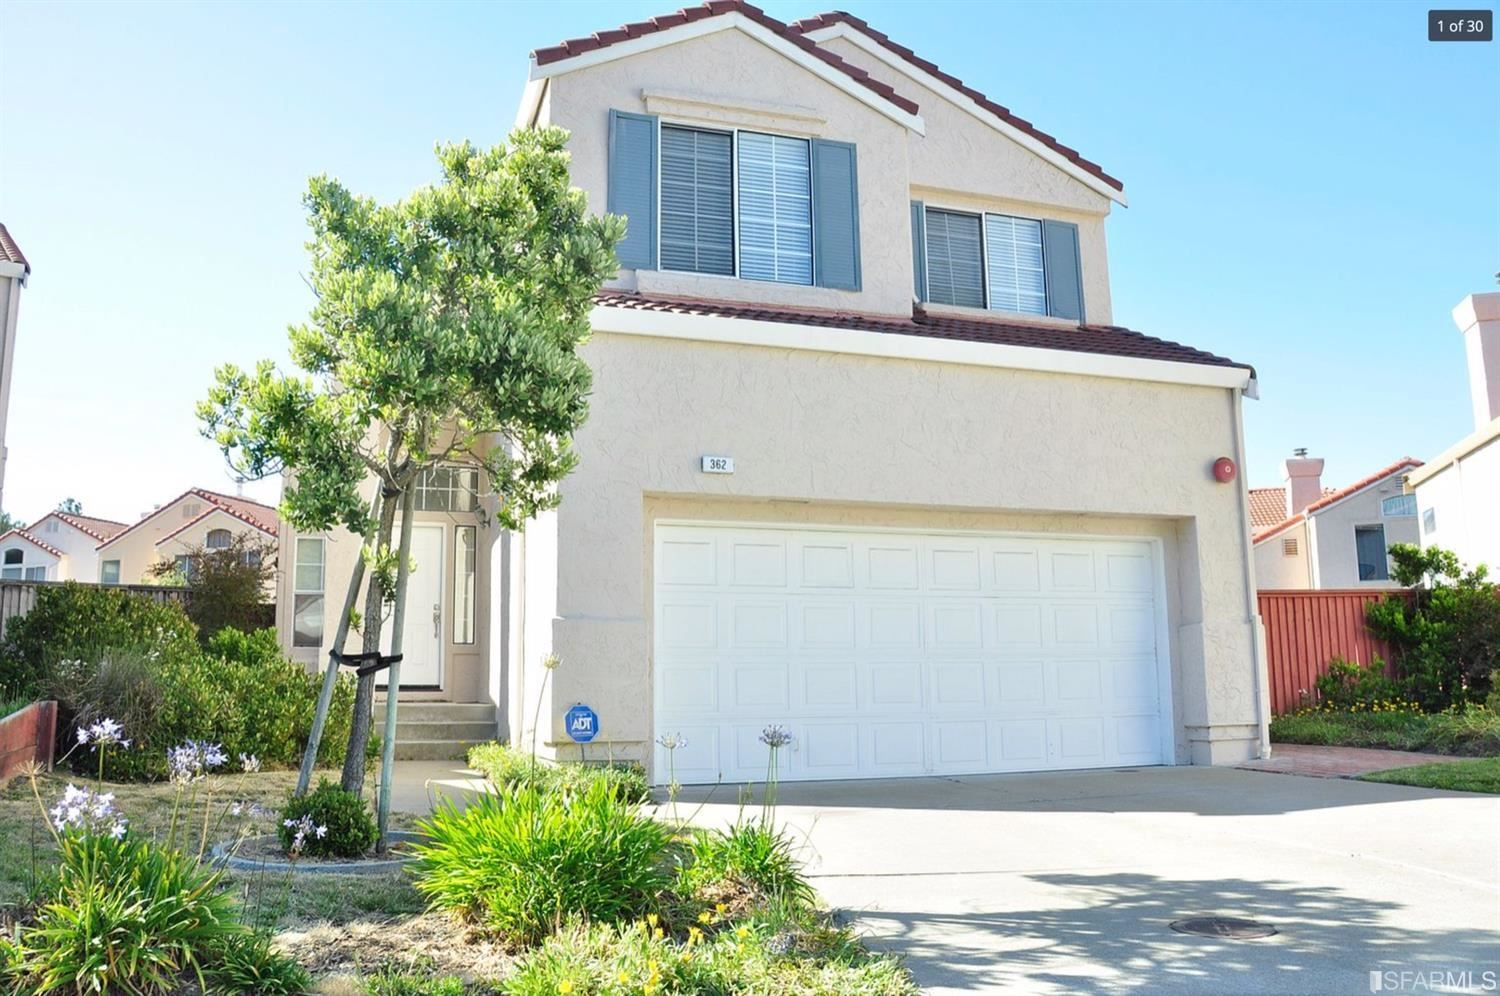 362 Cerro Court, Daly City, CA 94015 - #: 504526